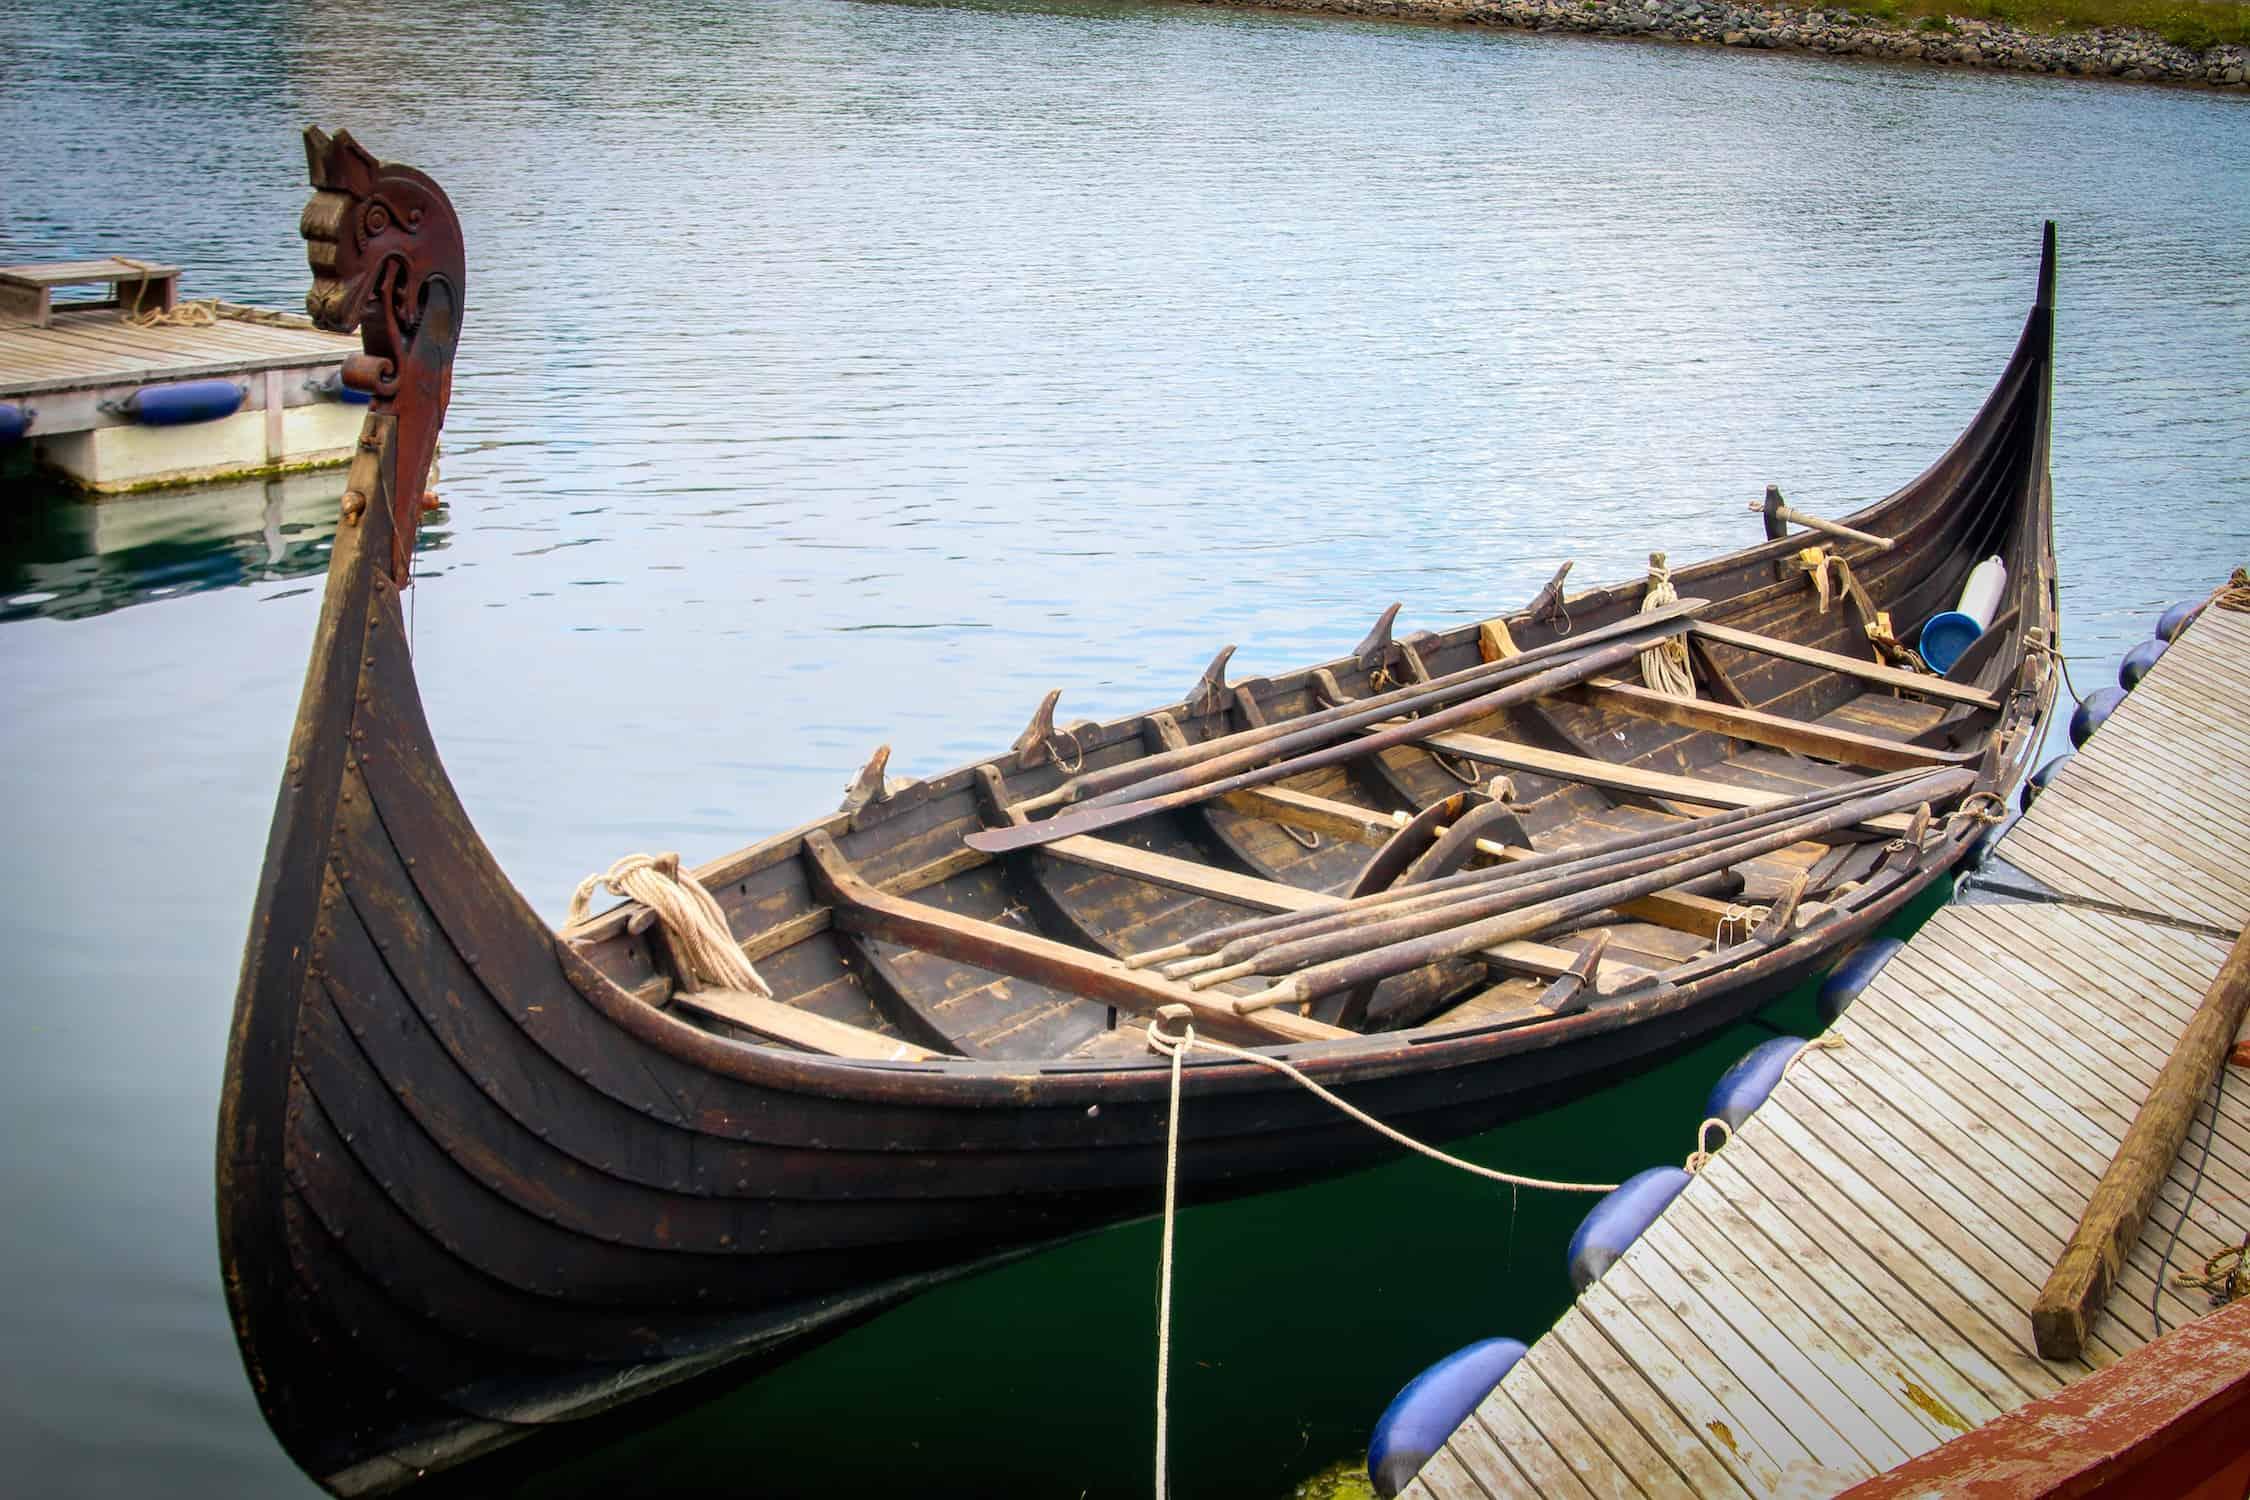 Fjords of Norway: Viking Boat at Sunnmøre Museum